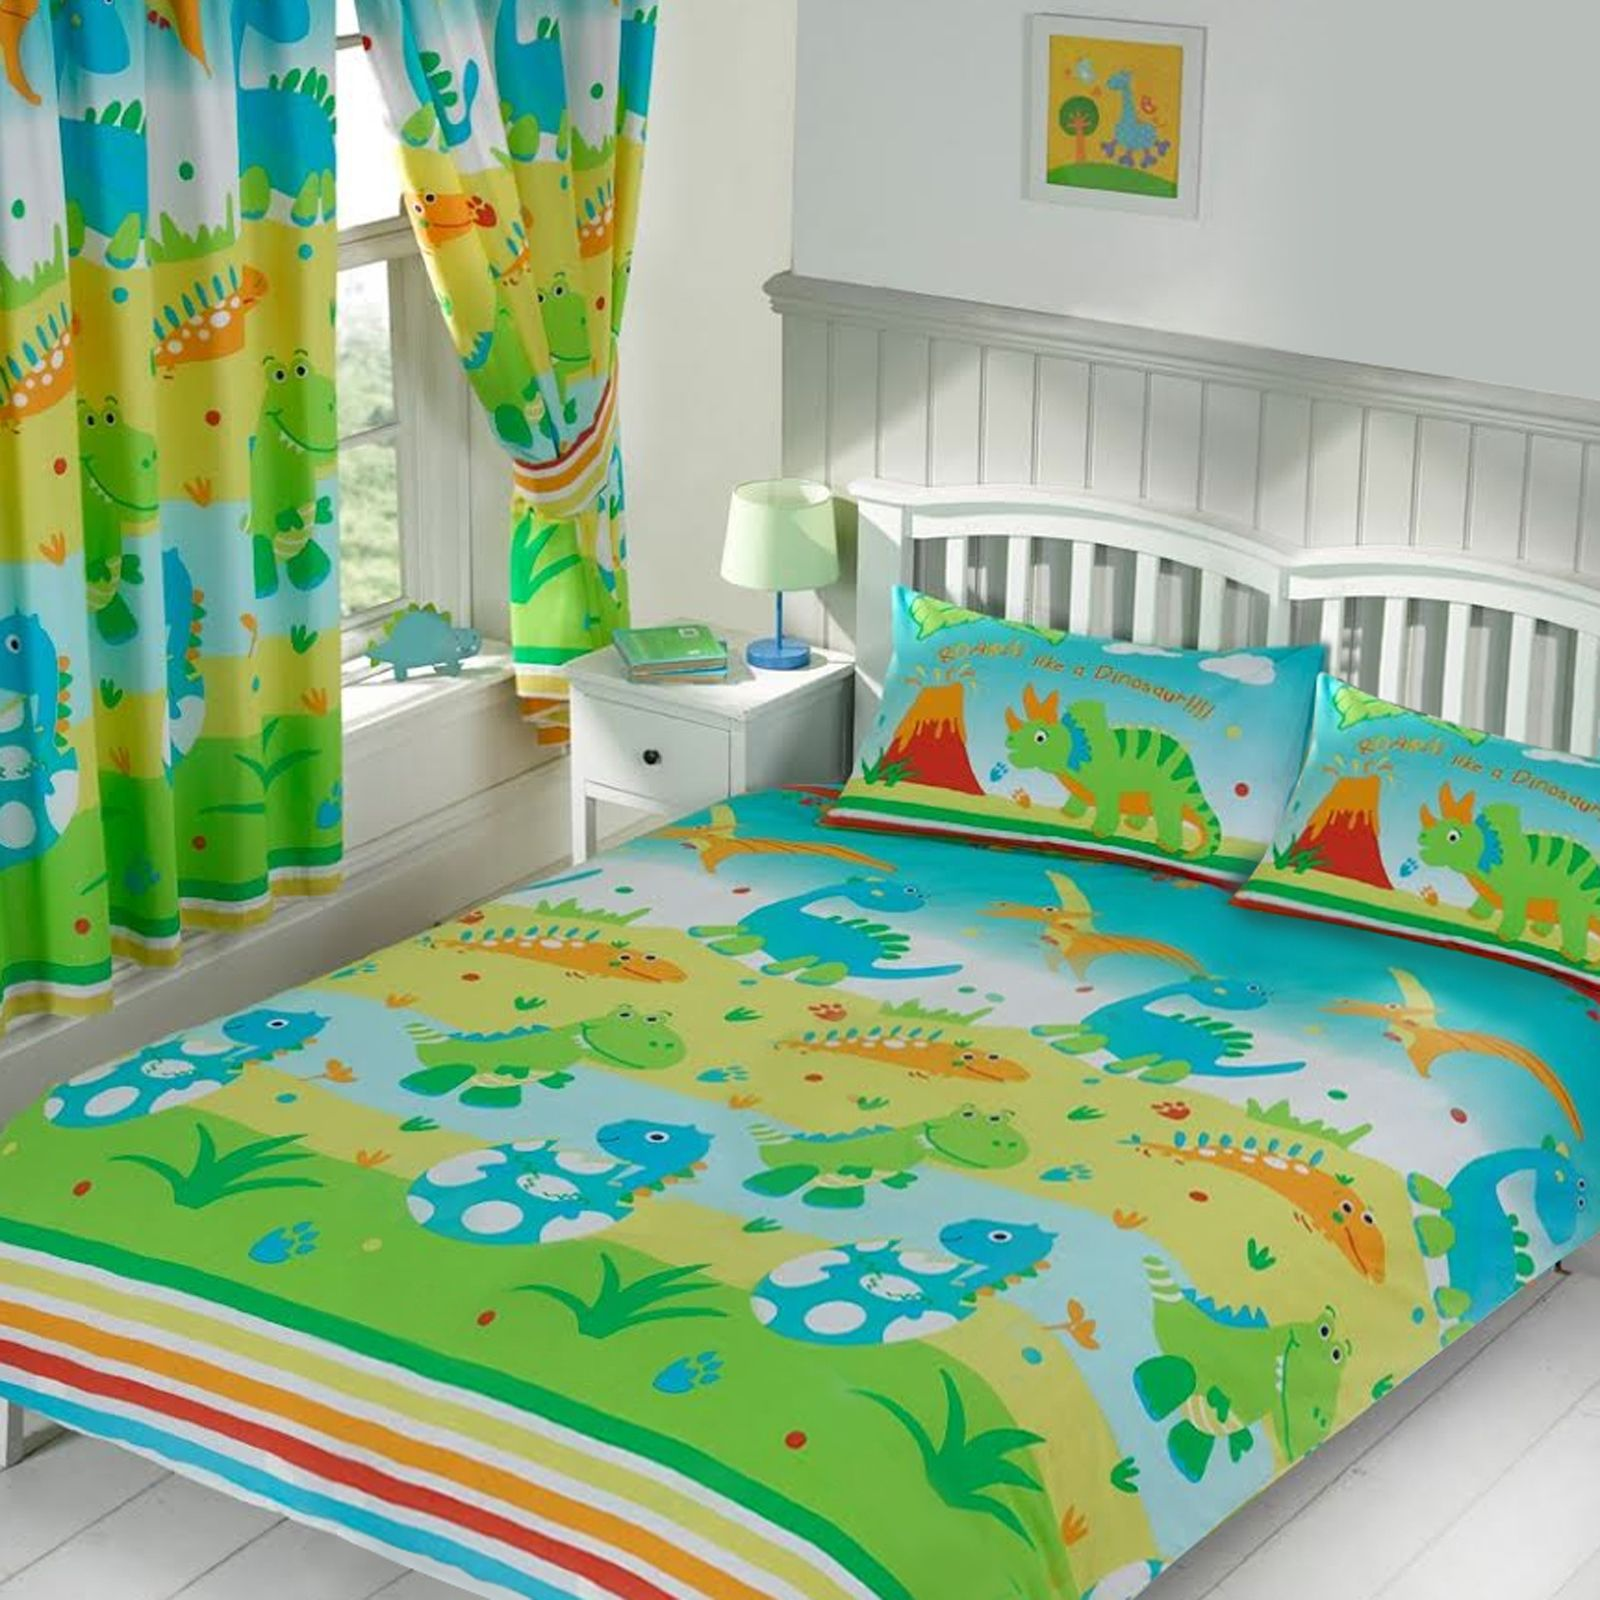 KIDS-DOUBLE-DUVET-COVER-SETS-DINOSAUR-ARMY-BIRDS-